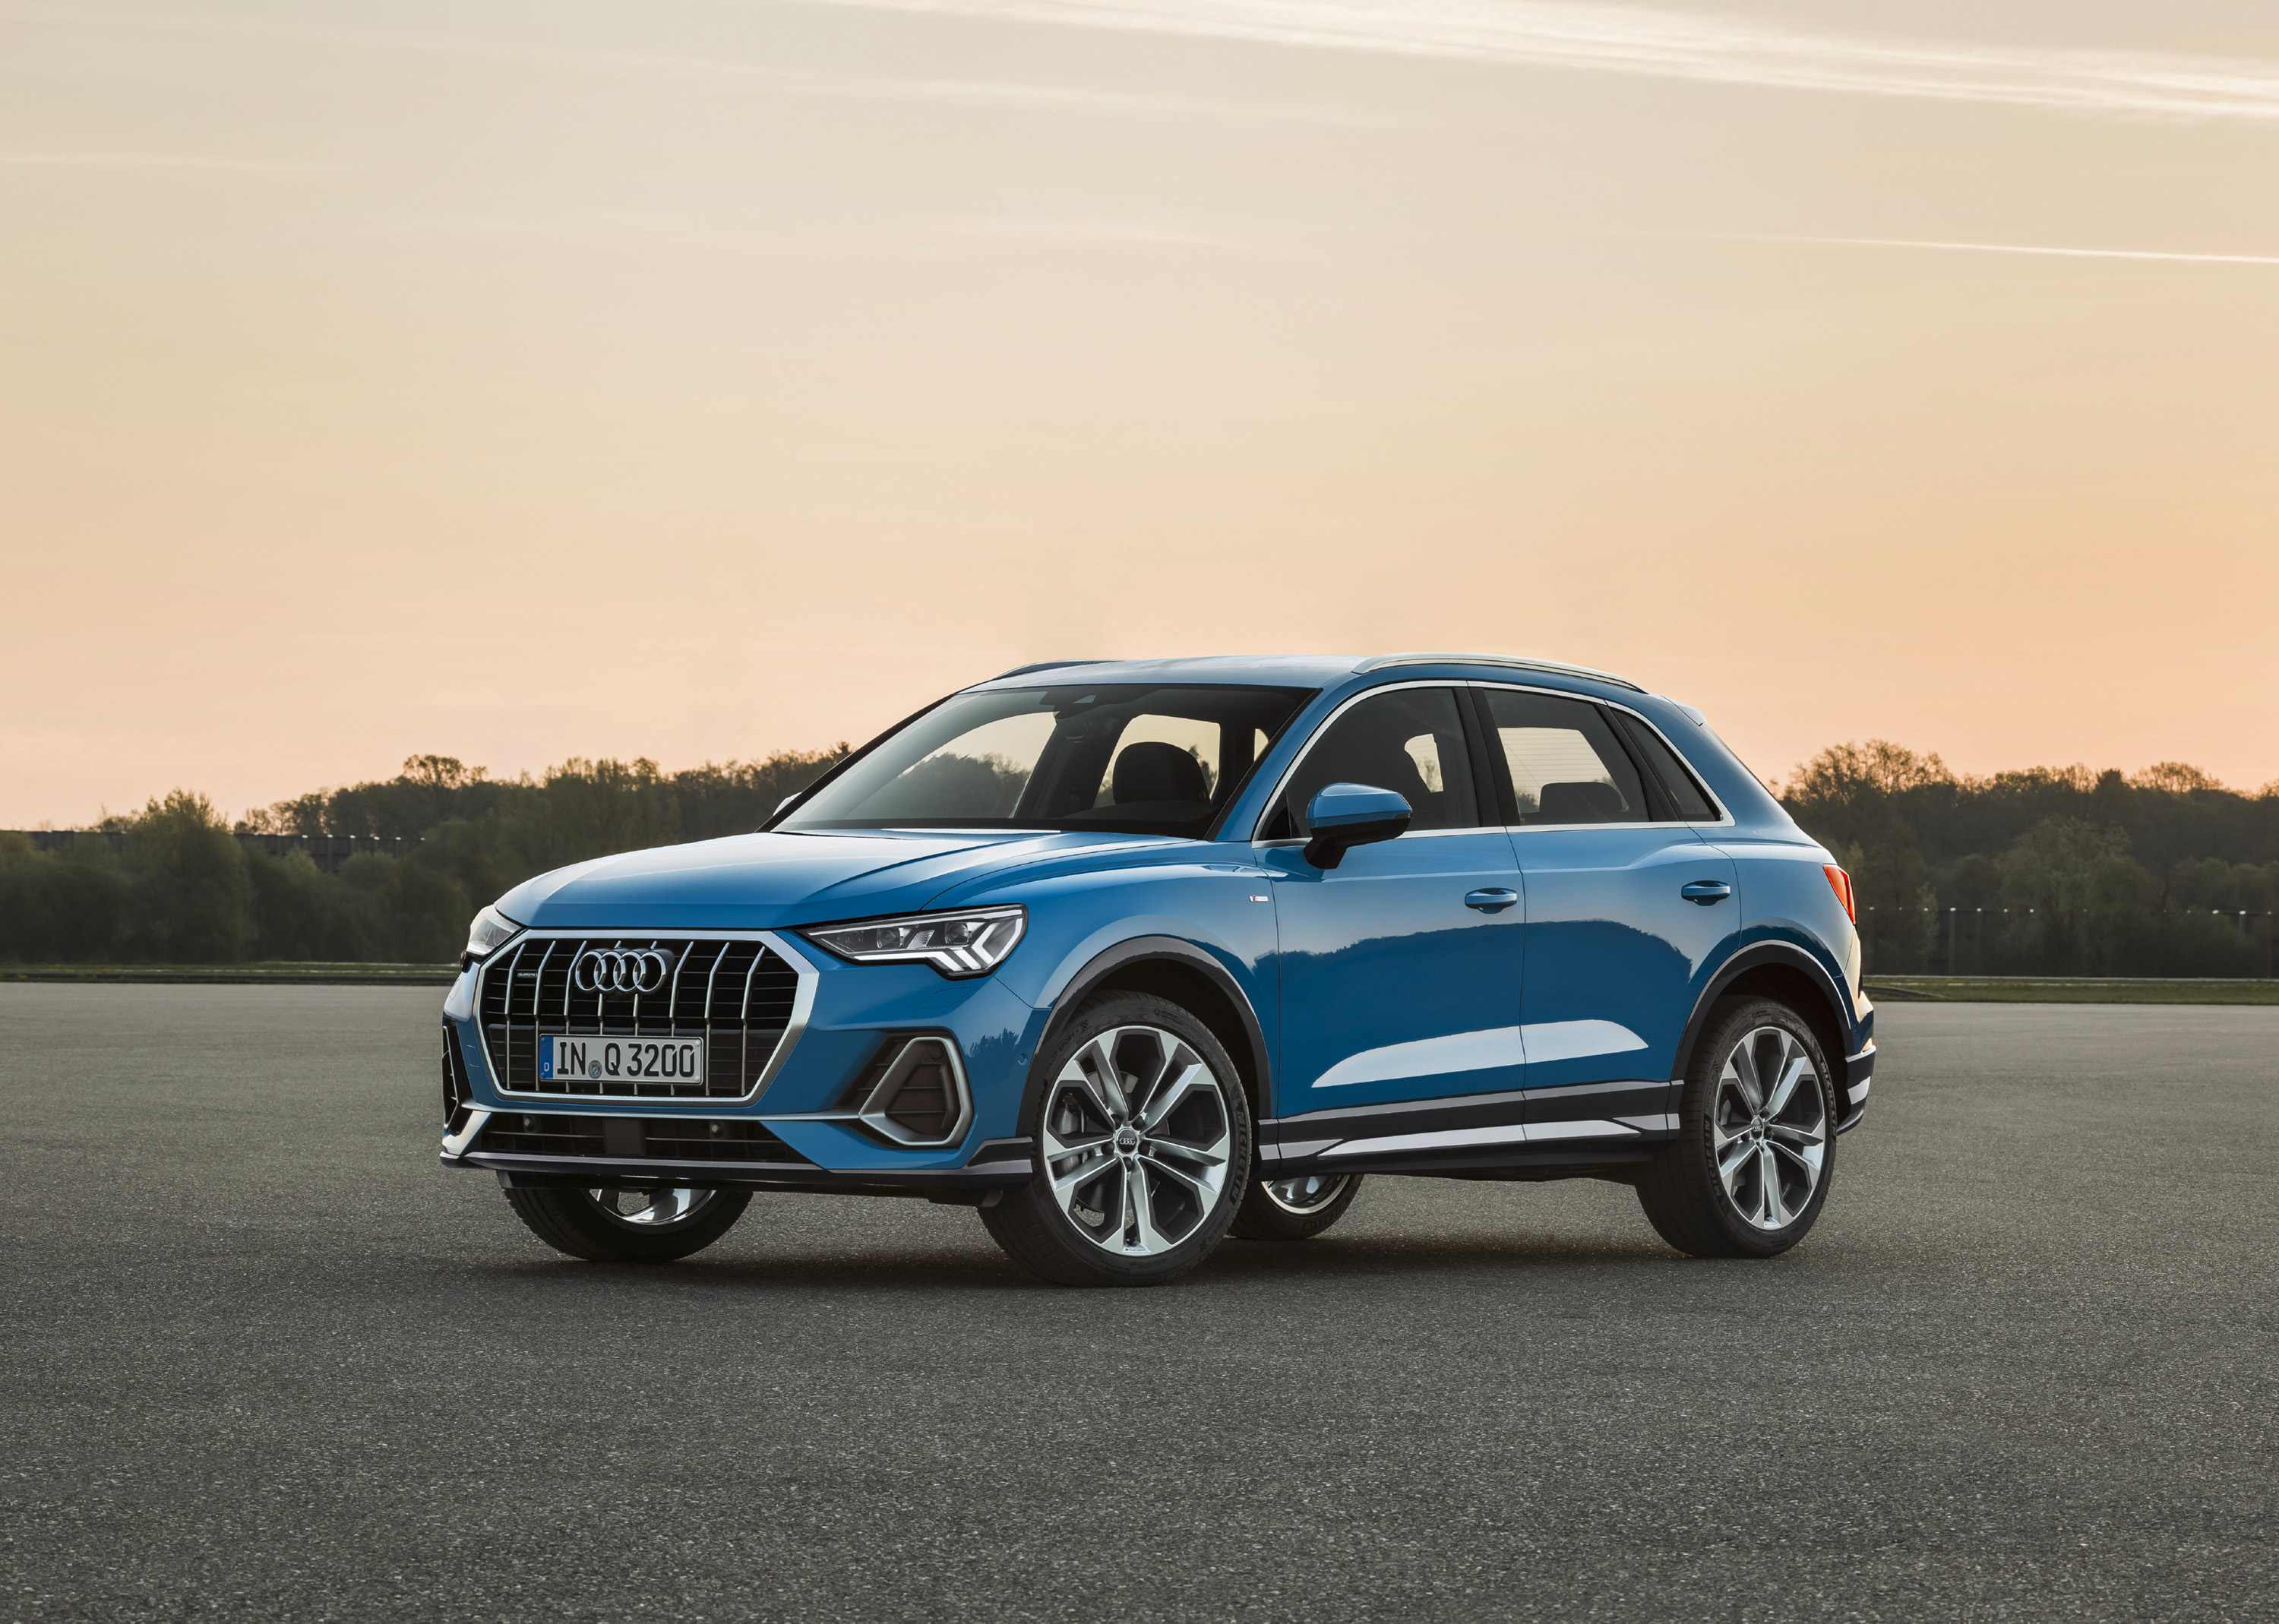 Audi Q3: photos, specifications, car features and reviews of owners 77